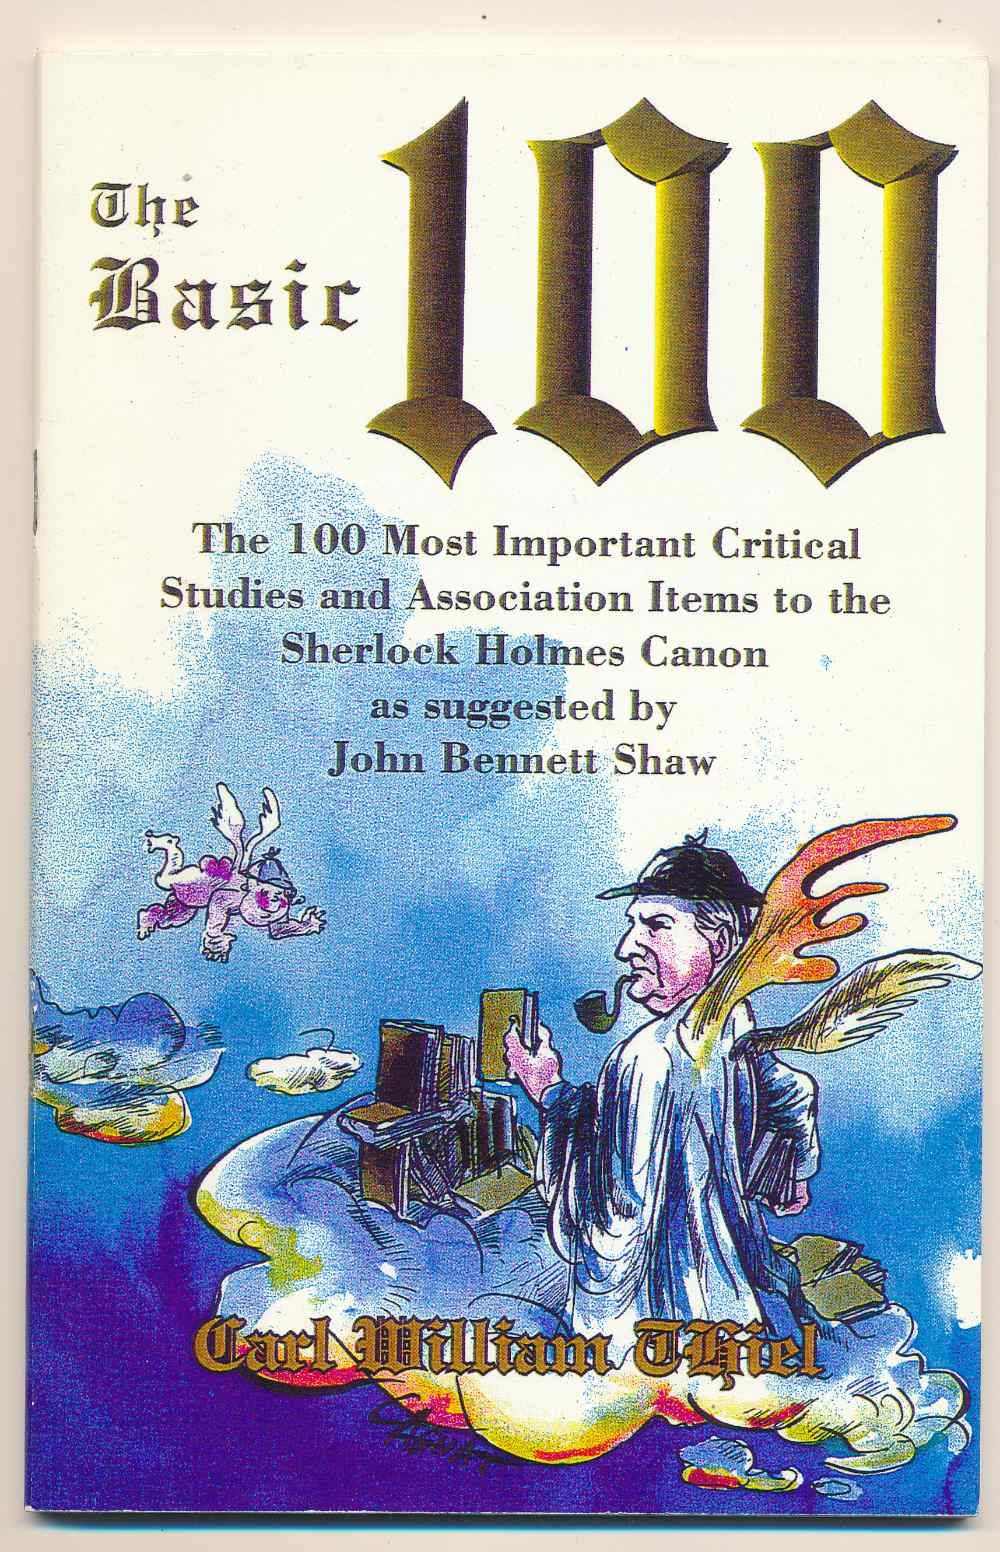 The basic 100 : the 100 most critical studies and association items to the Sherlock Holmes canon as suggested by John Bennett Shaw (an annotated collector's guide)